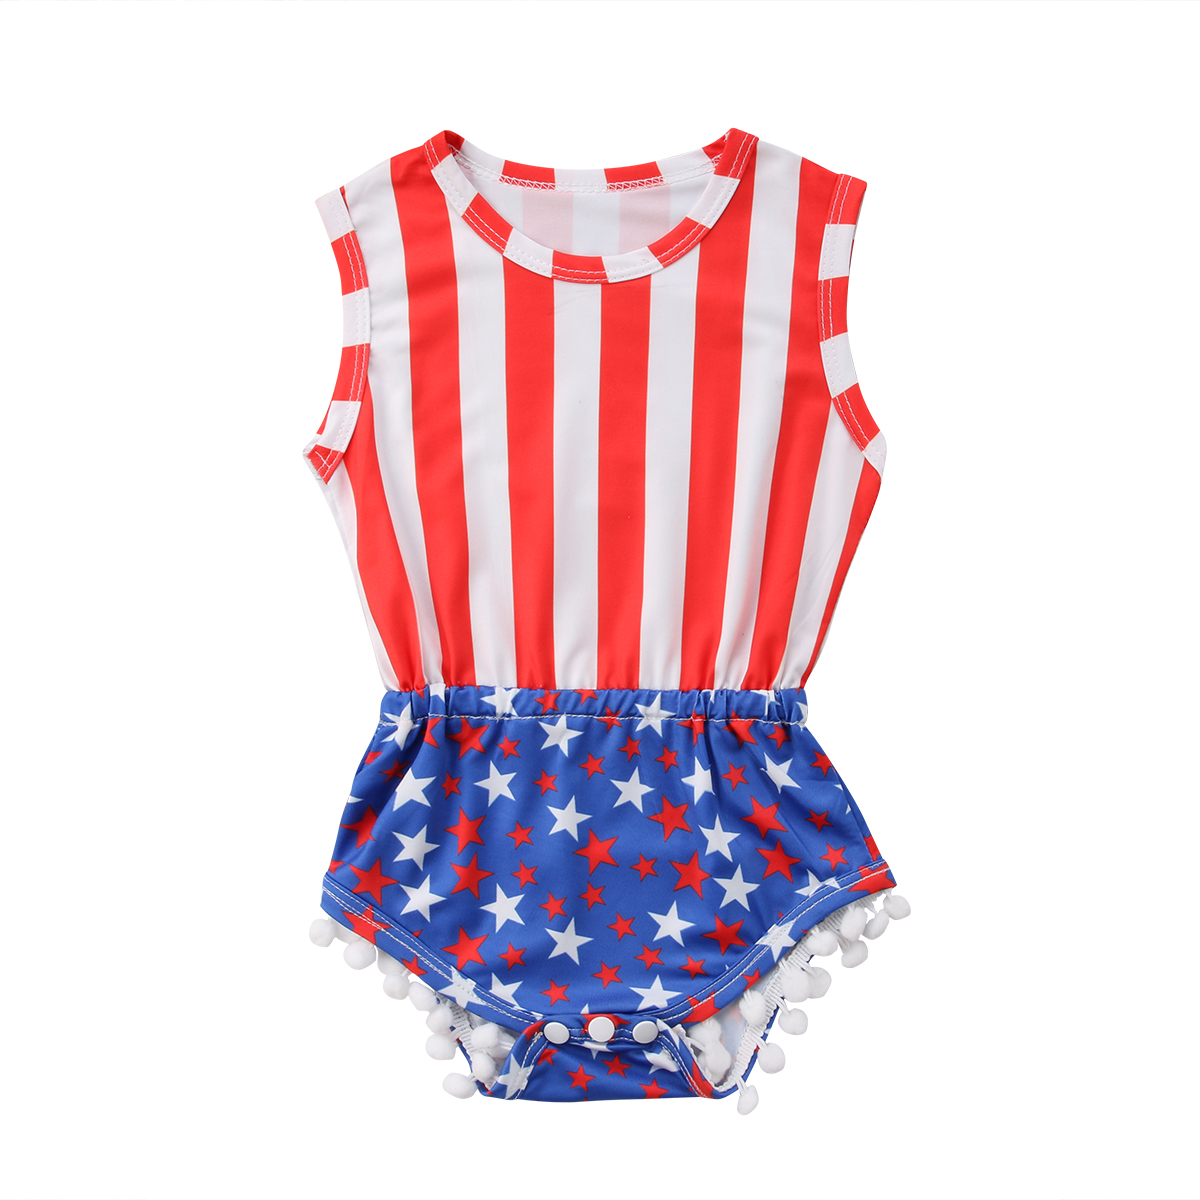 Summer Newborn Toddled Baby Girl Infant Romper Jumpsuits Stripe Star Sleeveless Tassel 2018 Baby Clothes Outfit